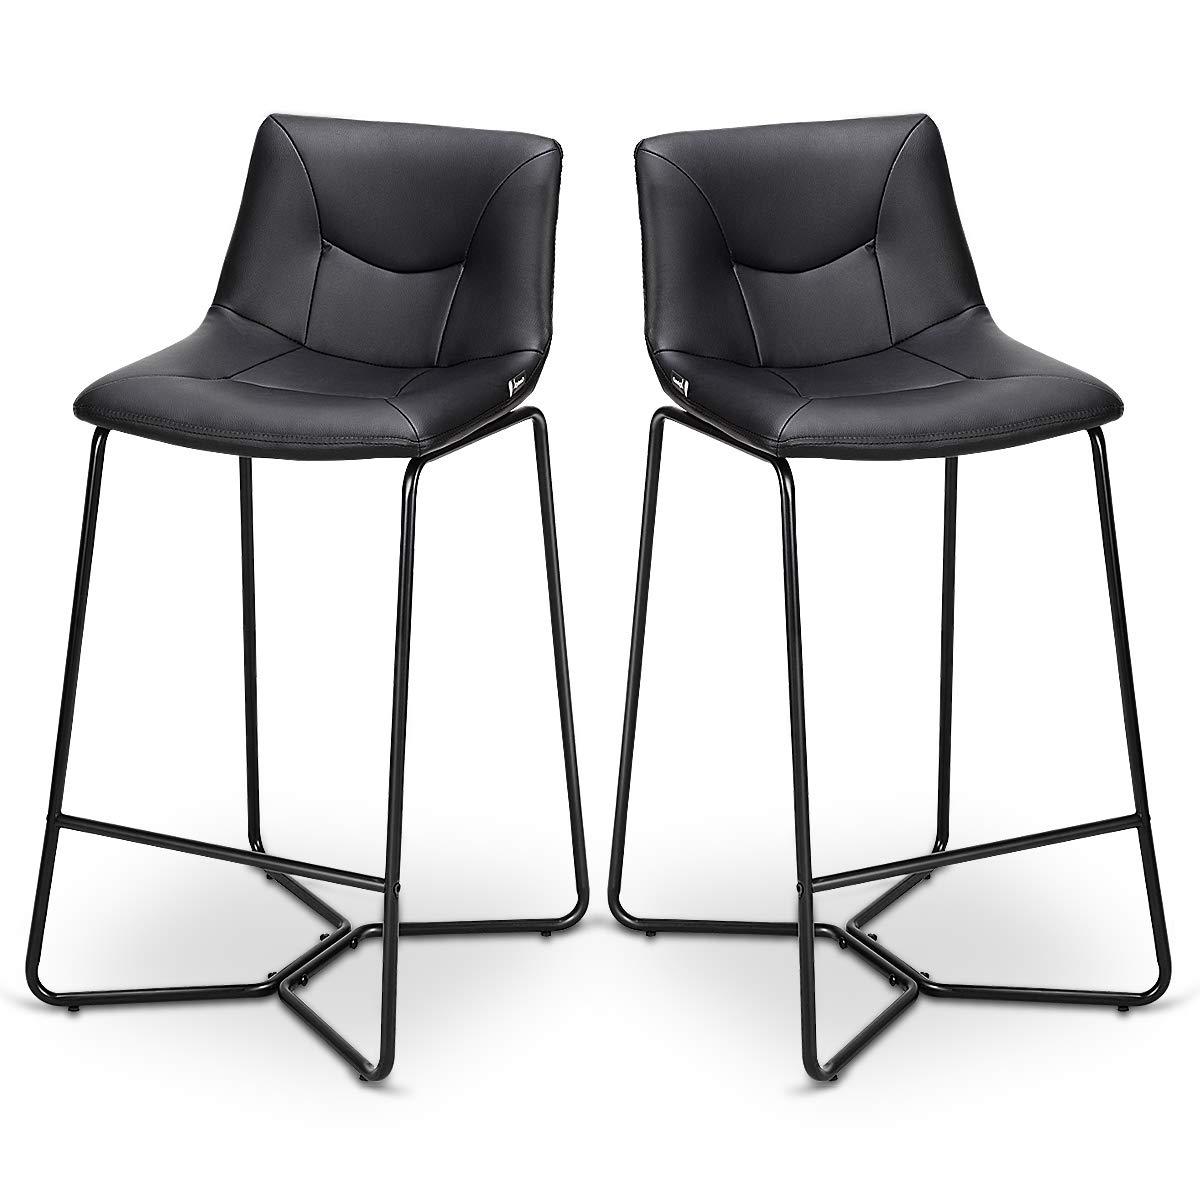 COSTWAY Bar Stools Set of 2 PU Leather Modern Contemporary Bar Height Armless Padded Seat Pub Bistro Kitchen Dining Side Chair Barstools with Metal Legs, Black